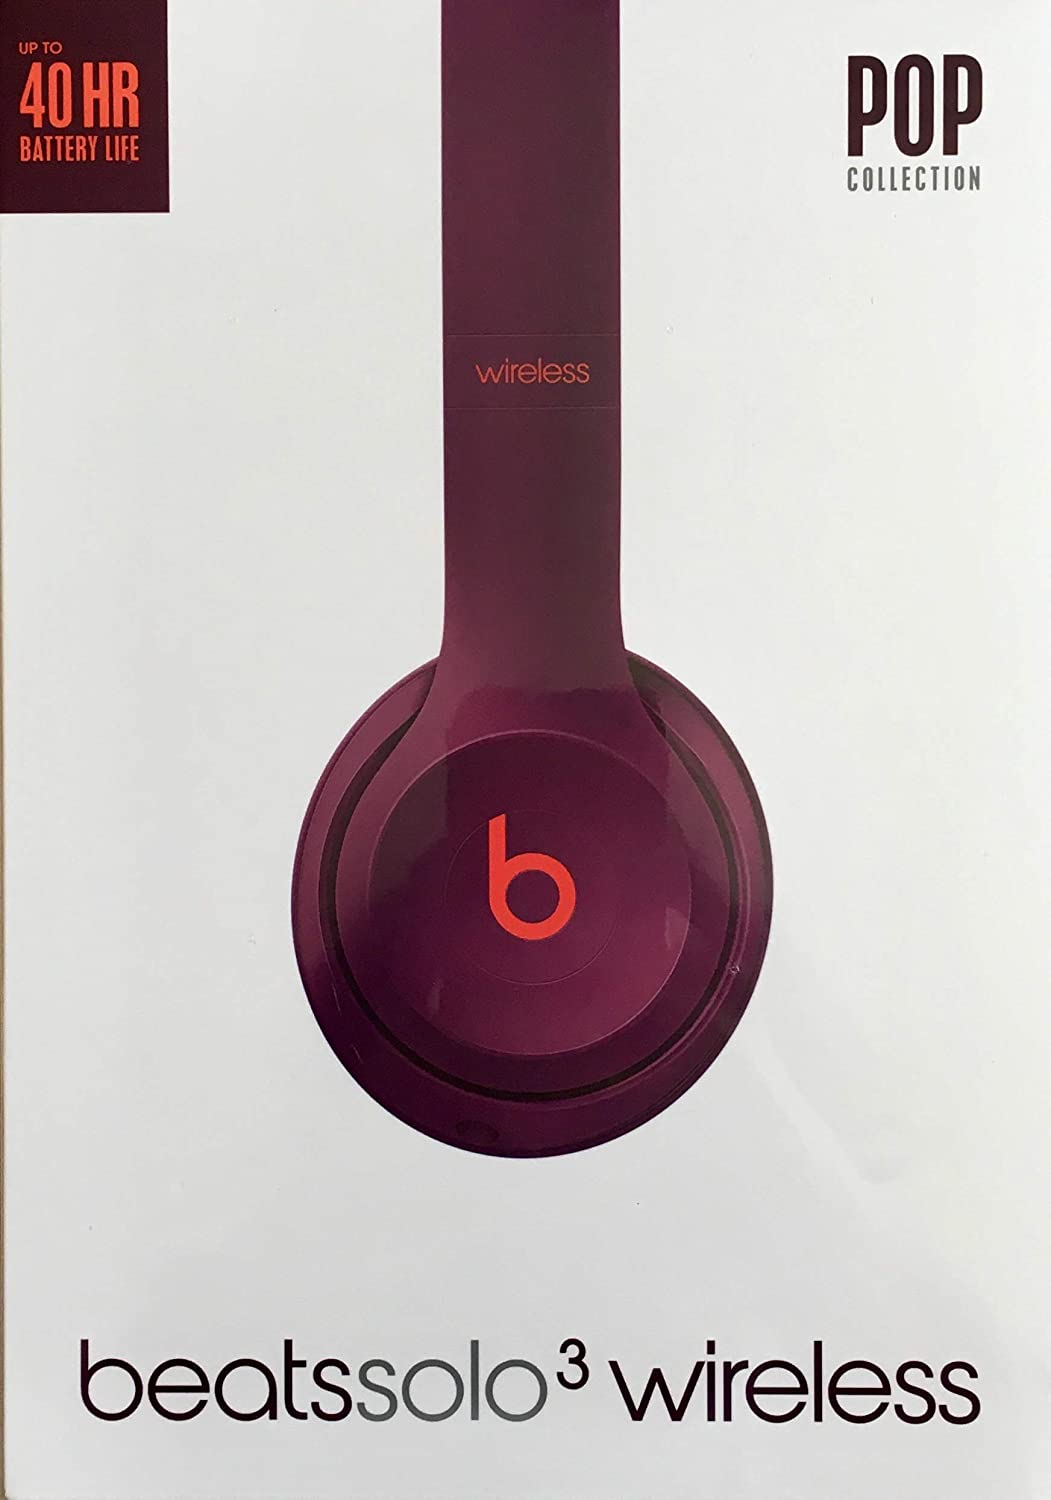 Auriculares Beats Solo3 Wireless - Pop Collection de Beats - magenta pop: Apple: Amazon.es